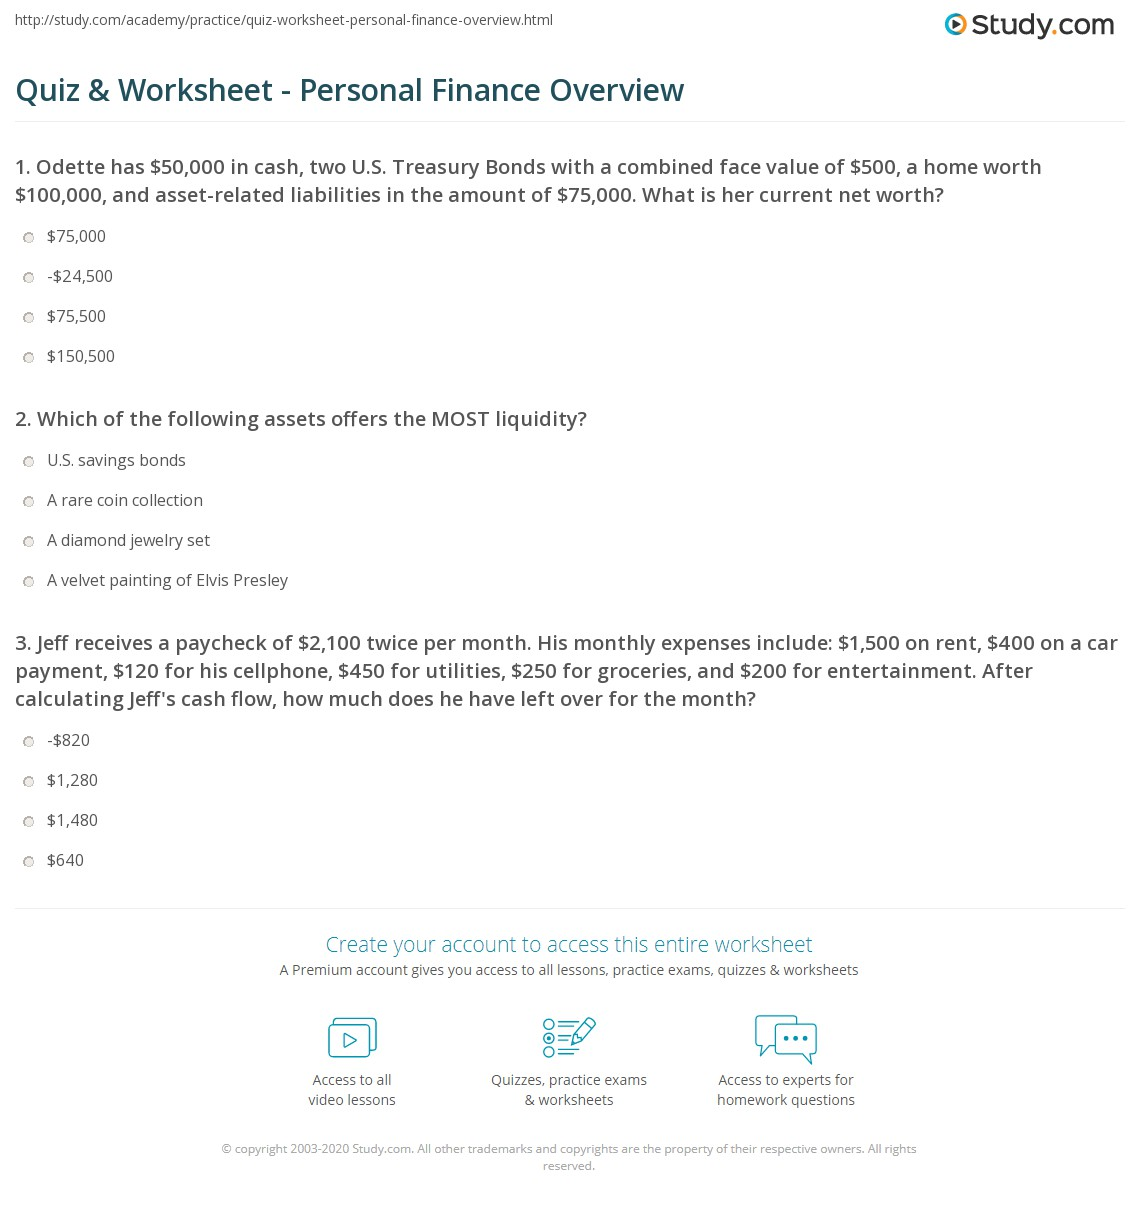 Worksheets How To Calculate Your Net Worth Worksheet quiz worksheet personal finance overview study com which of the following assets offers most liquidity